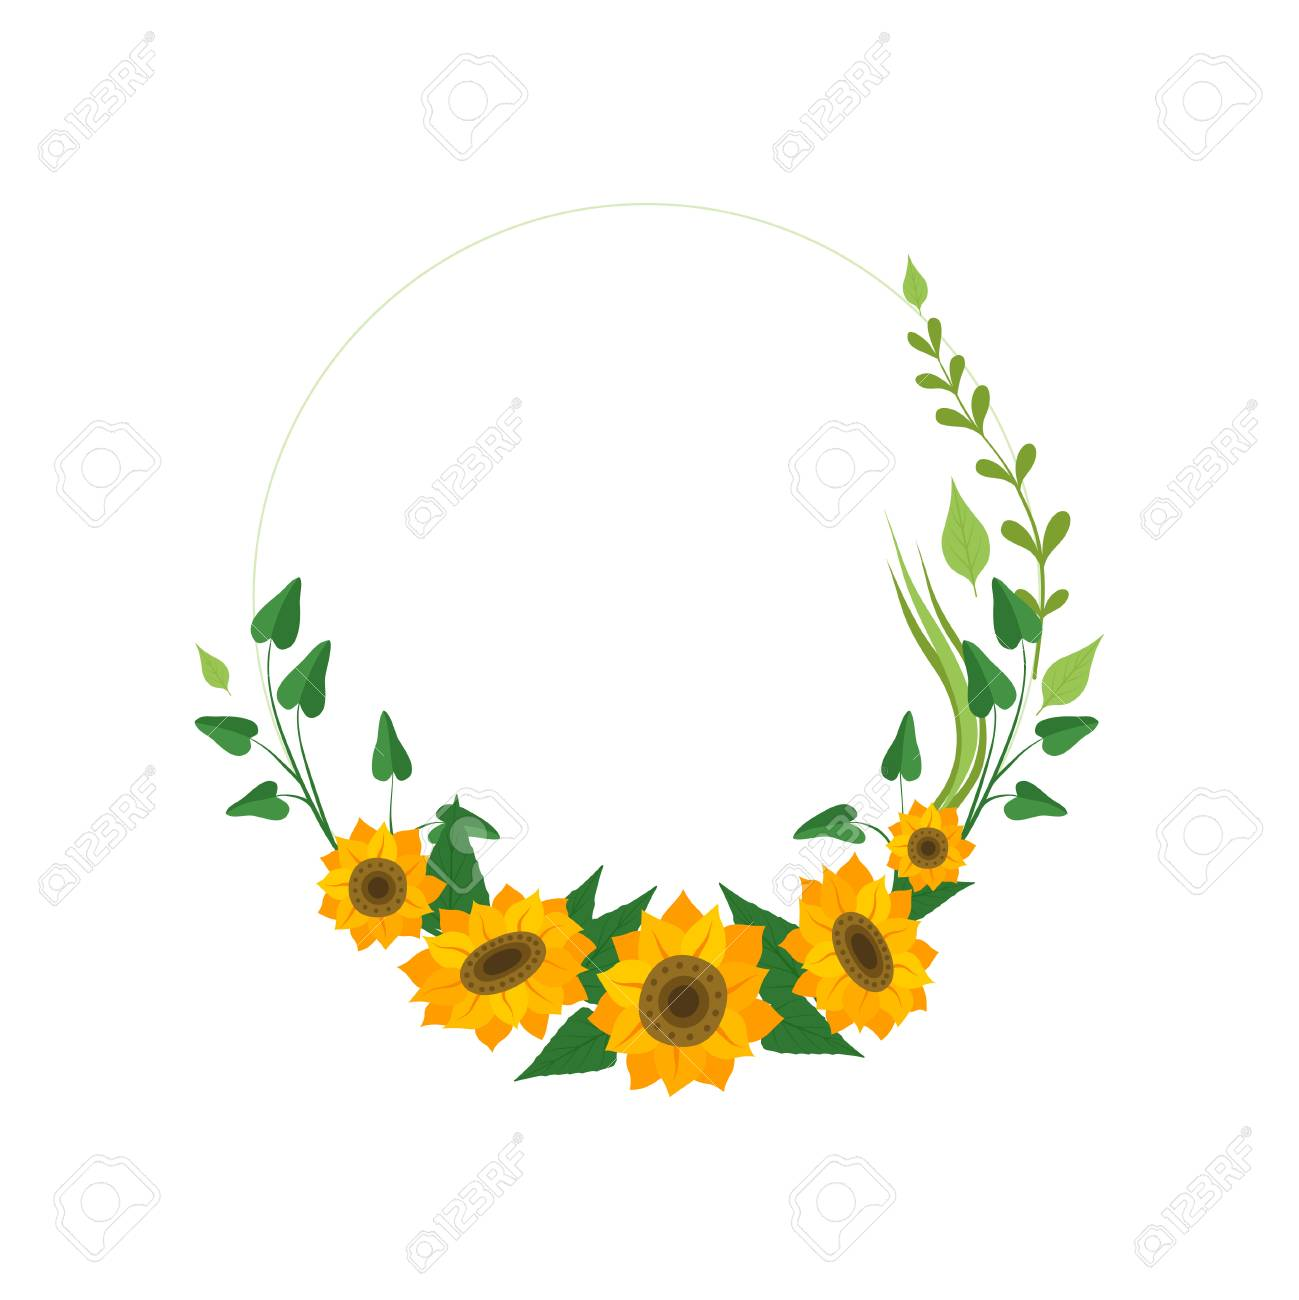 Floral Wreath With Sunflowers And Leaves Design Element For Royalty Free Cliparts Vectors And Stock Illustration Image 121062560